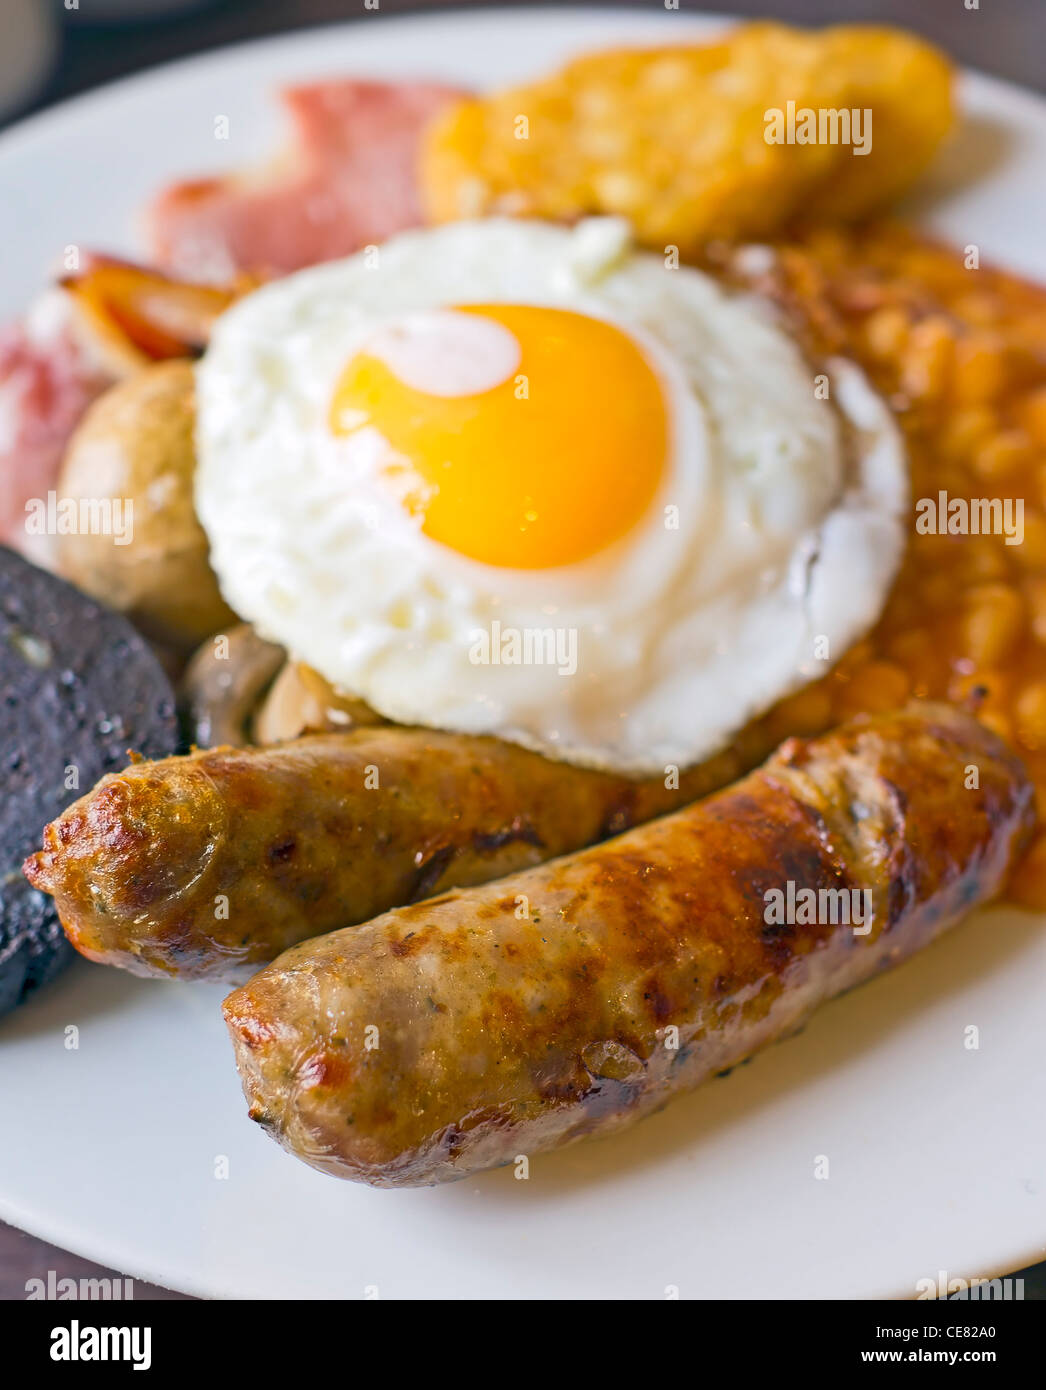 A full cooked breakfast. - Stock Image